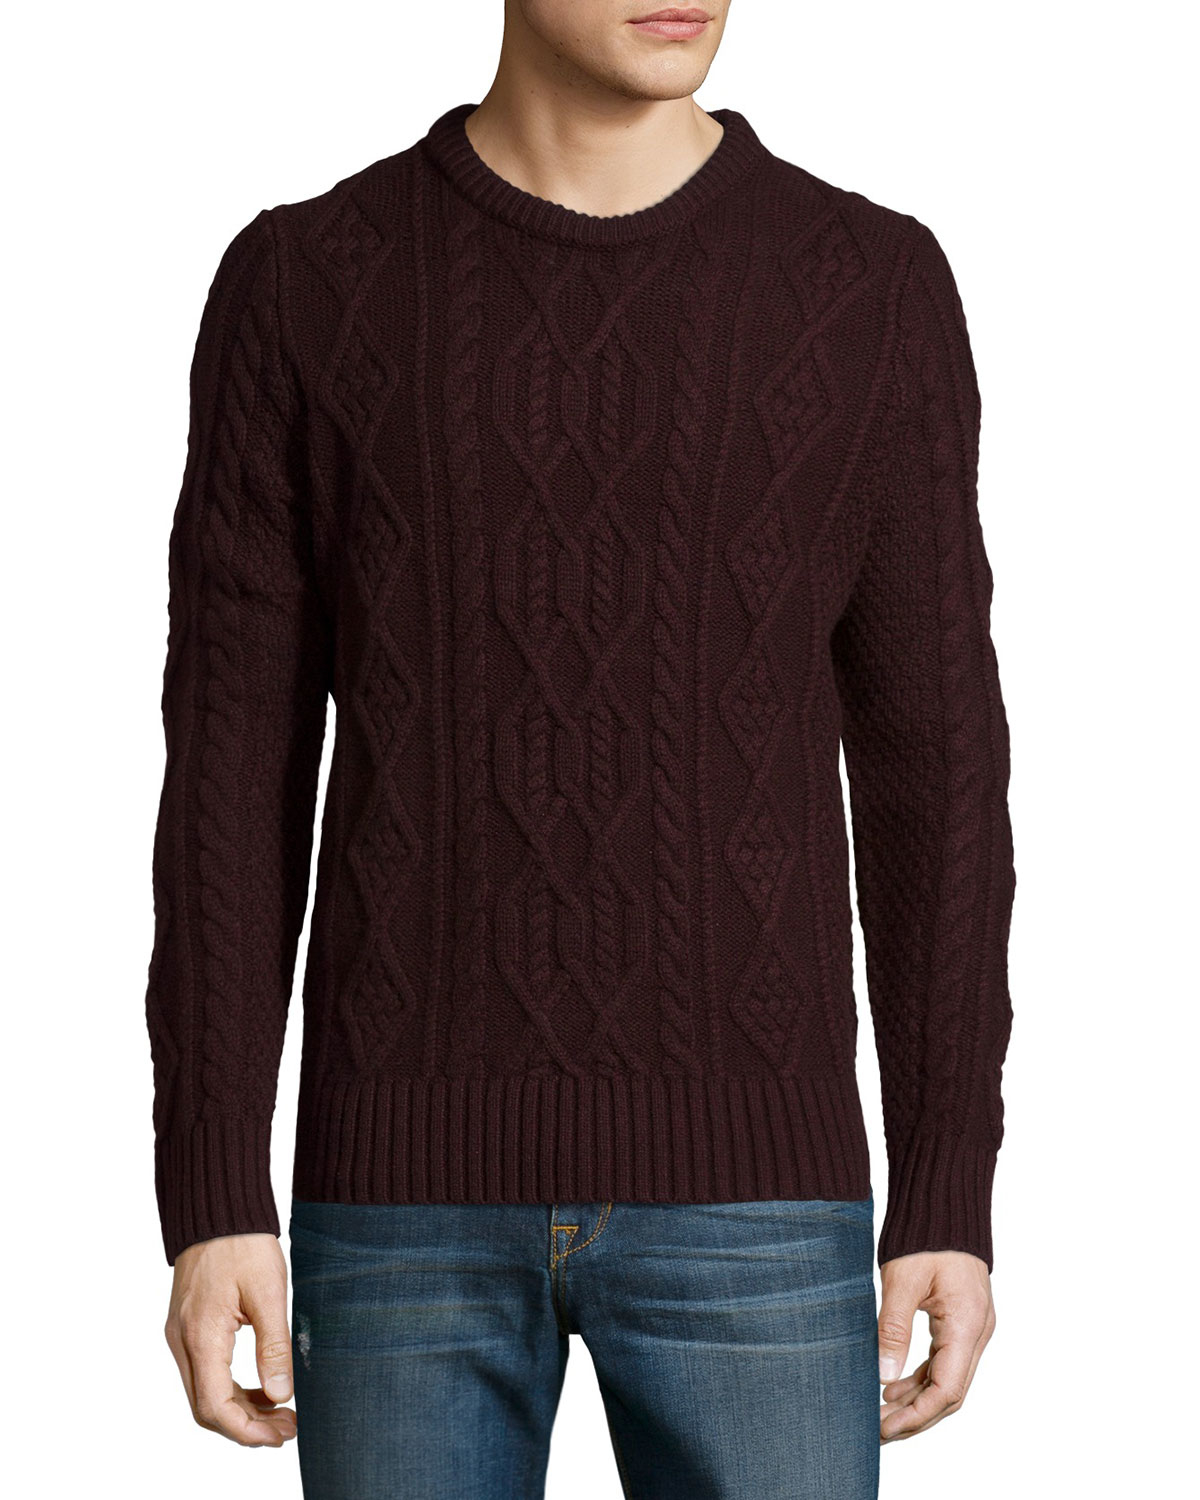 Smart and warm knitwear for men to style their look in the transitional seasons. Layer up with men's jumpers and cardigans. Next day delivery and free returns available.